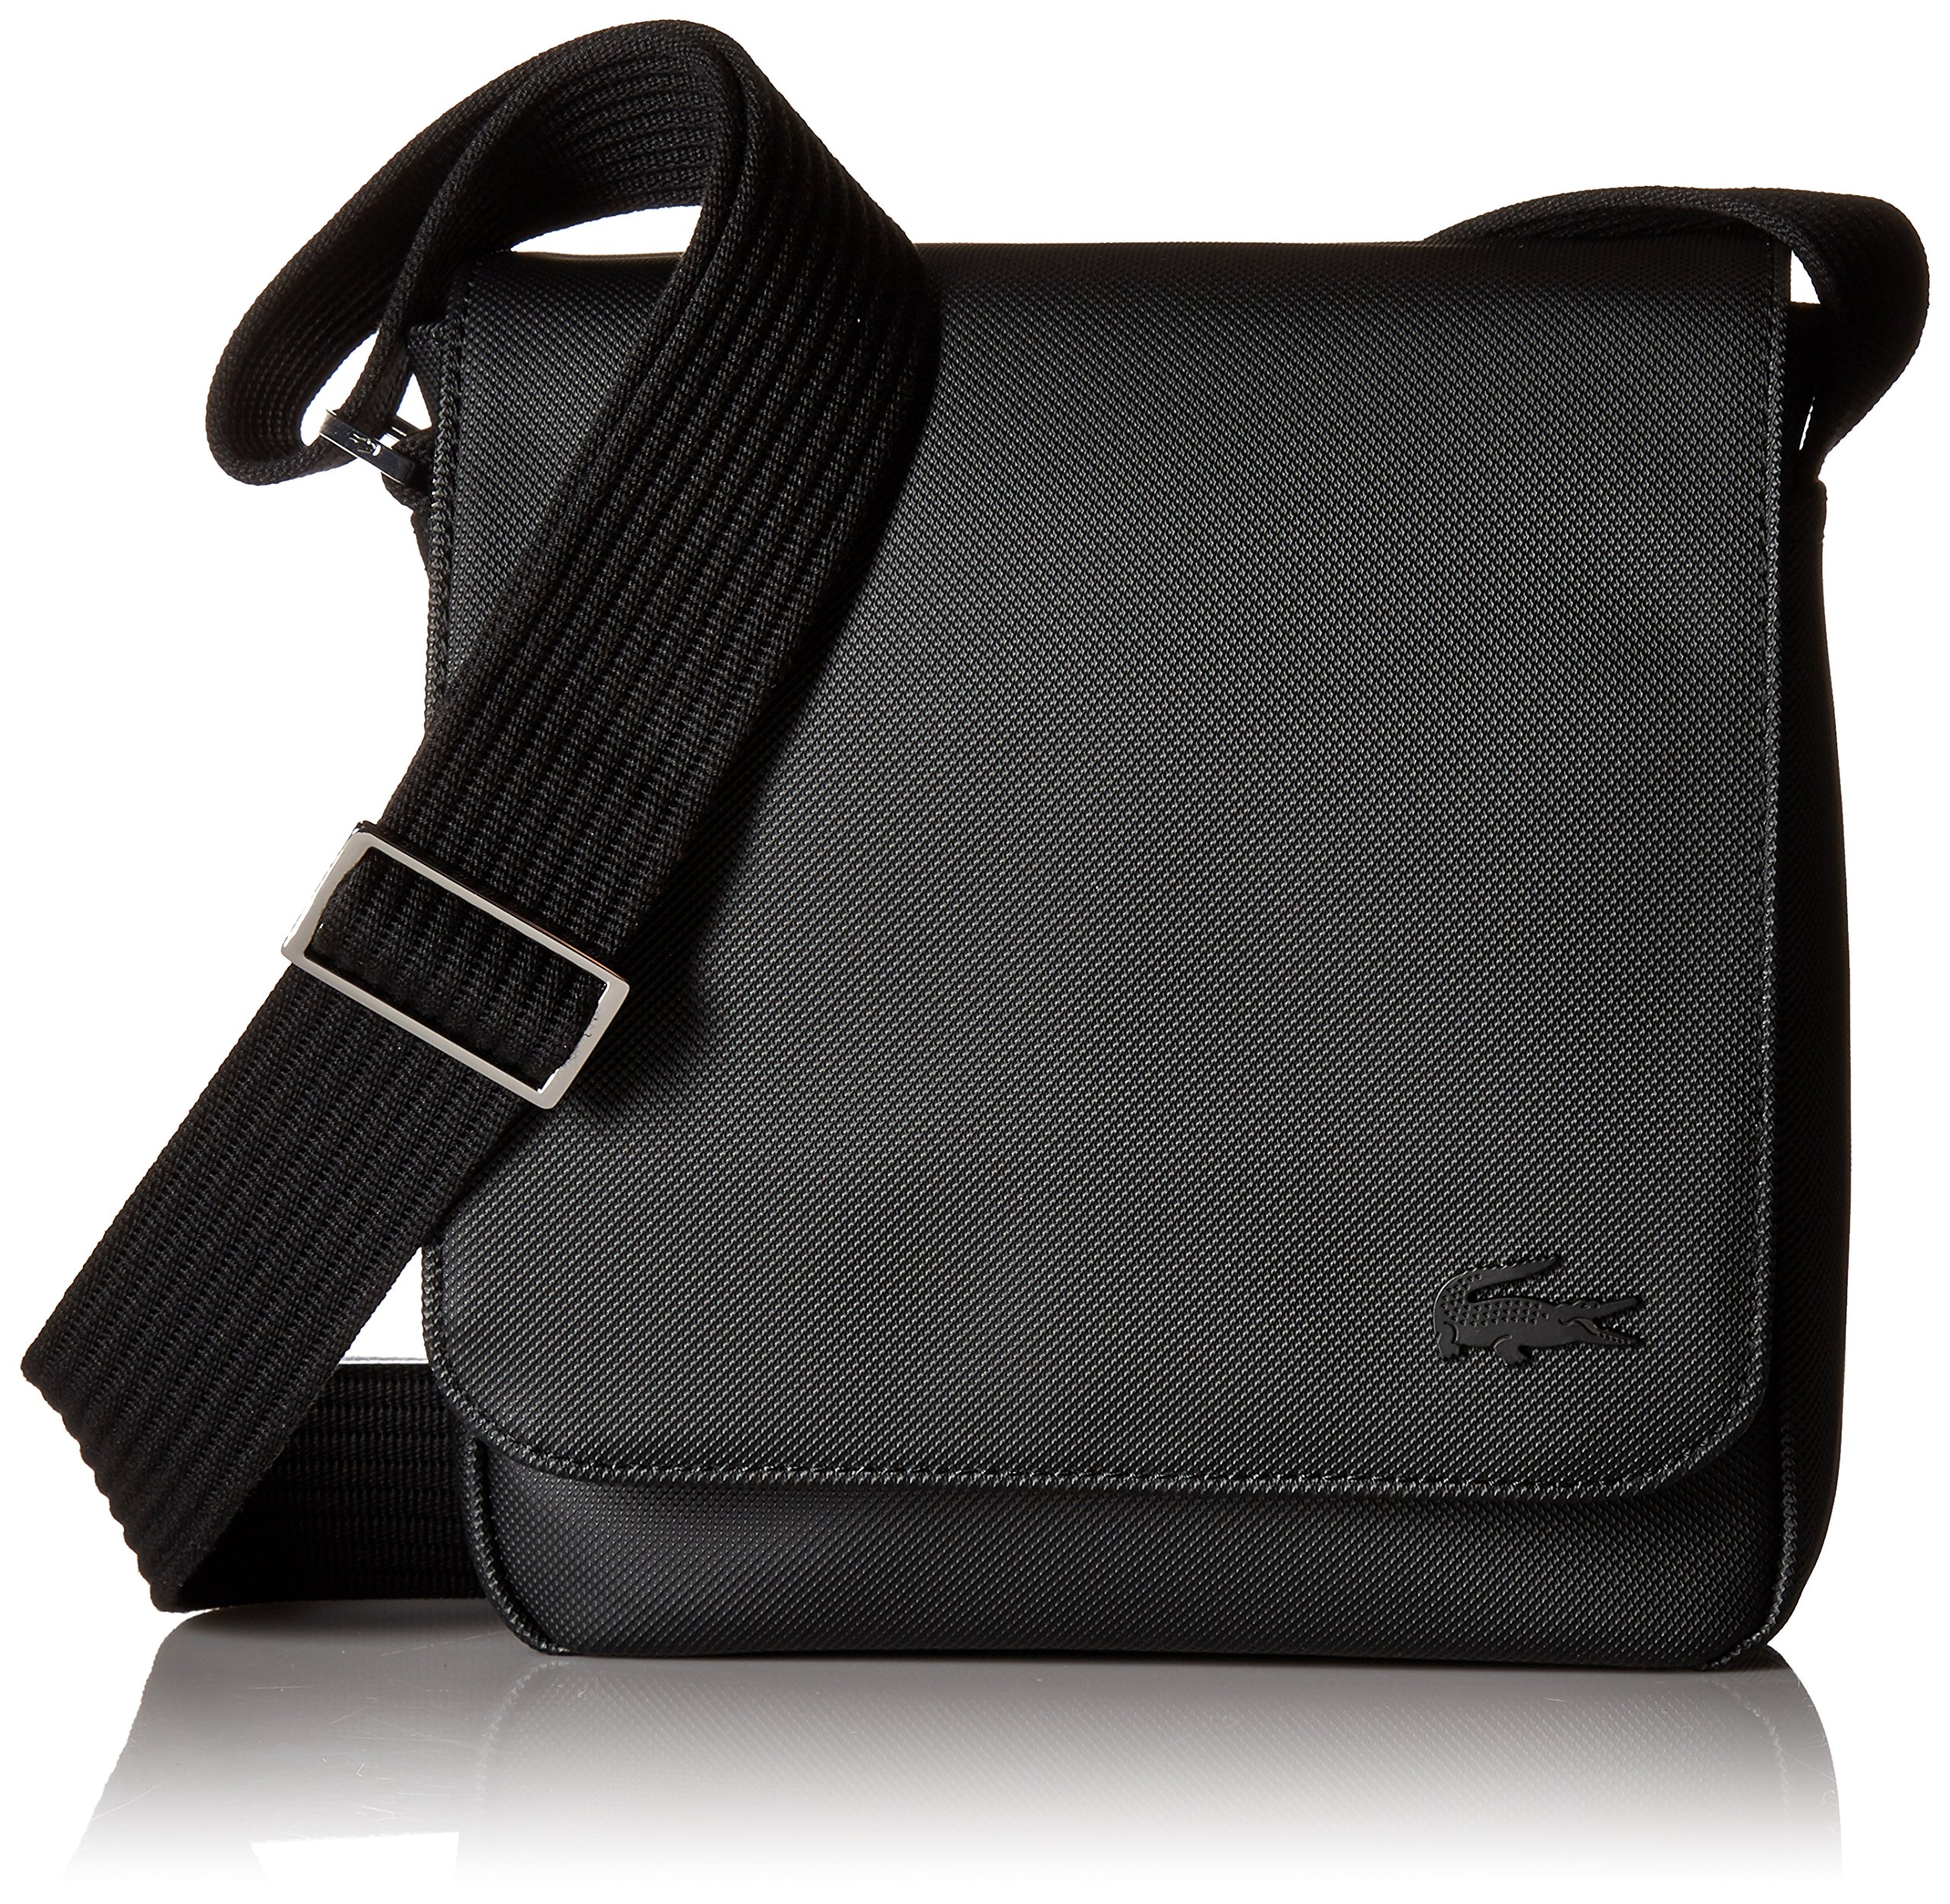 Lacoste Men's Flap Crossover Bag, Black, One Size